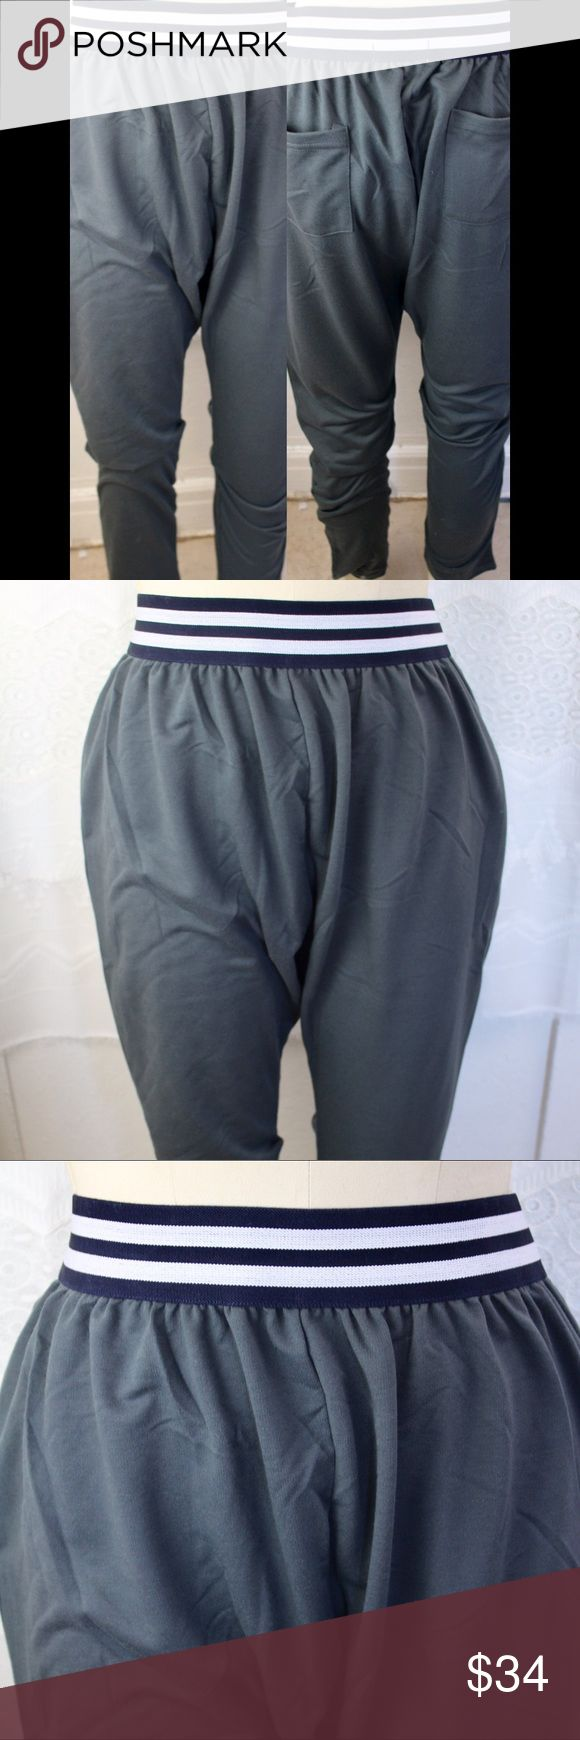 """🆕Sport Stripe Harem Trackpants 🔹Super soft comfy material!🔹Tight at ankle, baggy at hip grey harem sweatpants with black & white elastic at waist.🔹Pockets at side and back.🔹Size L.🔹Measurements are taken flat. Waist: 15.5"""" not stretched, Length: 40"""".🔹Boutique items are new from manufacturers & may not have tags.🔹No PayPal/trades/try-ons.🔹I accept reasonable offers or bundle for discount! Pants Track Pants & Joggers"""